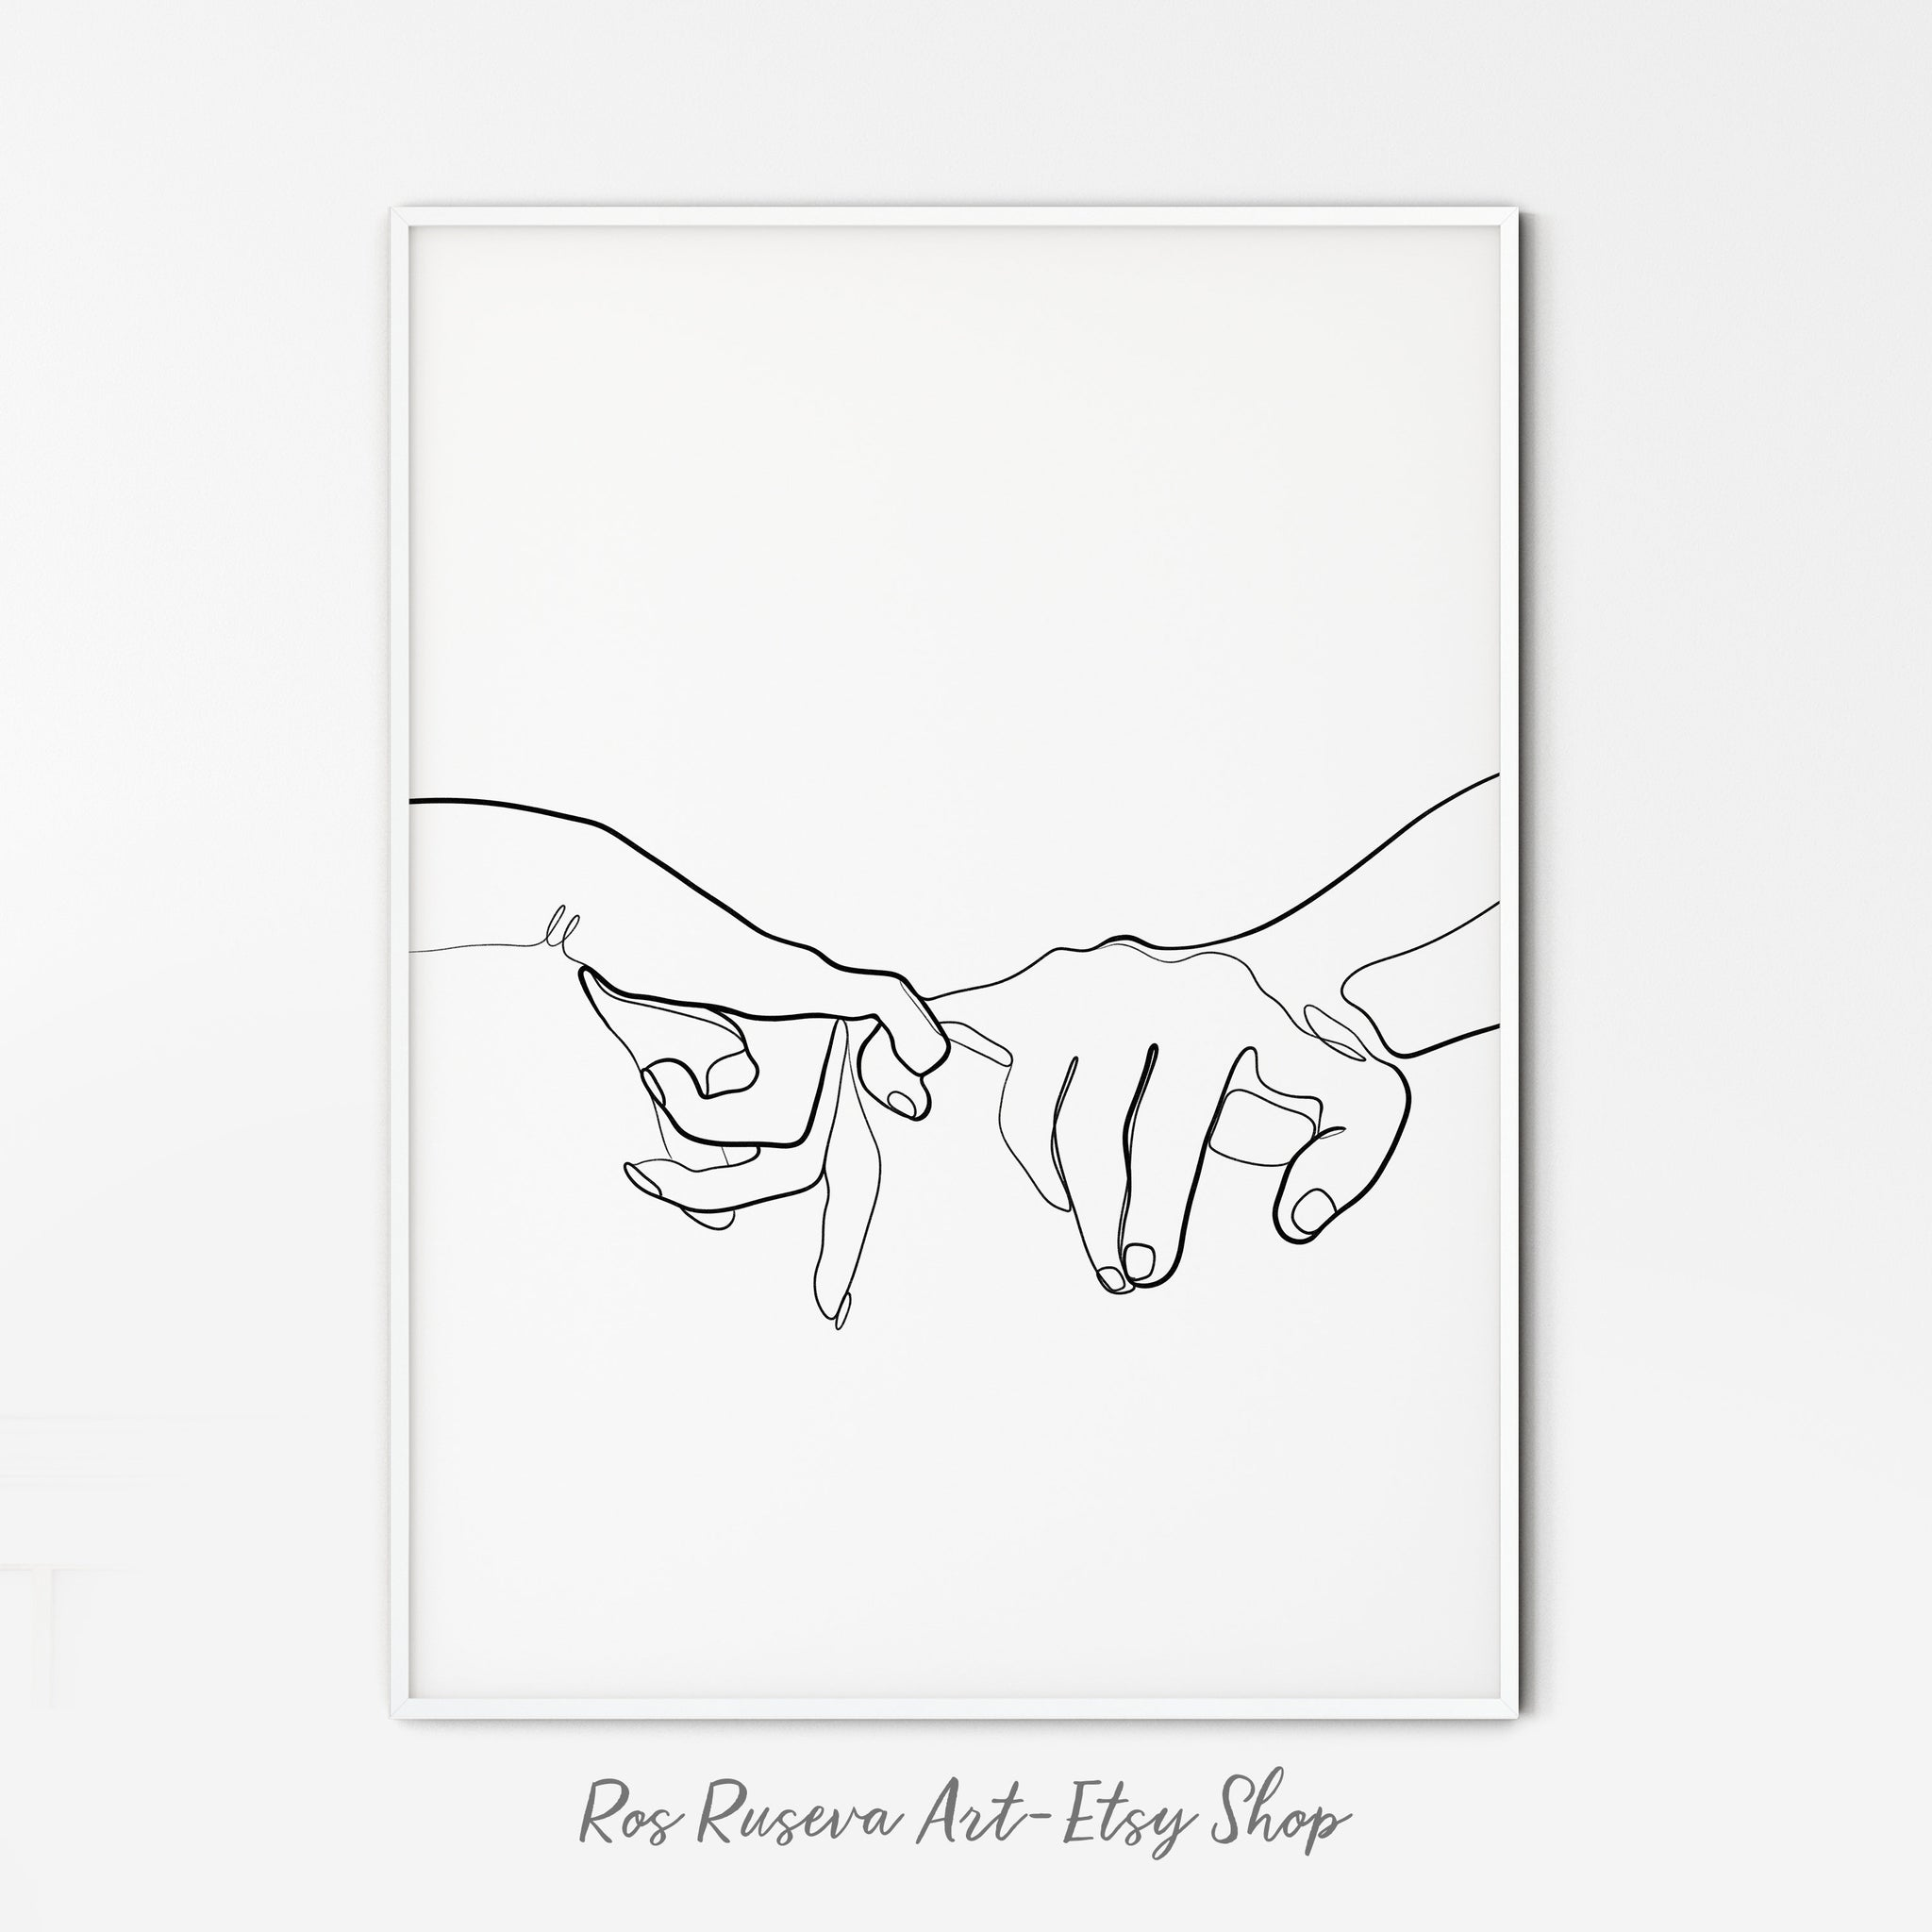 Pinky Promise Print, One Line Art, One Line Drawing, Pinky Swear, Romantic Poster, Single Line Art, Minimal Line Art, Couple Print